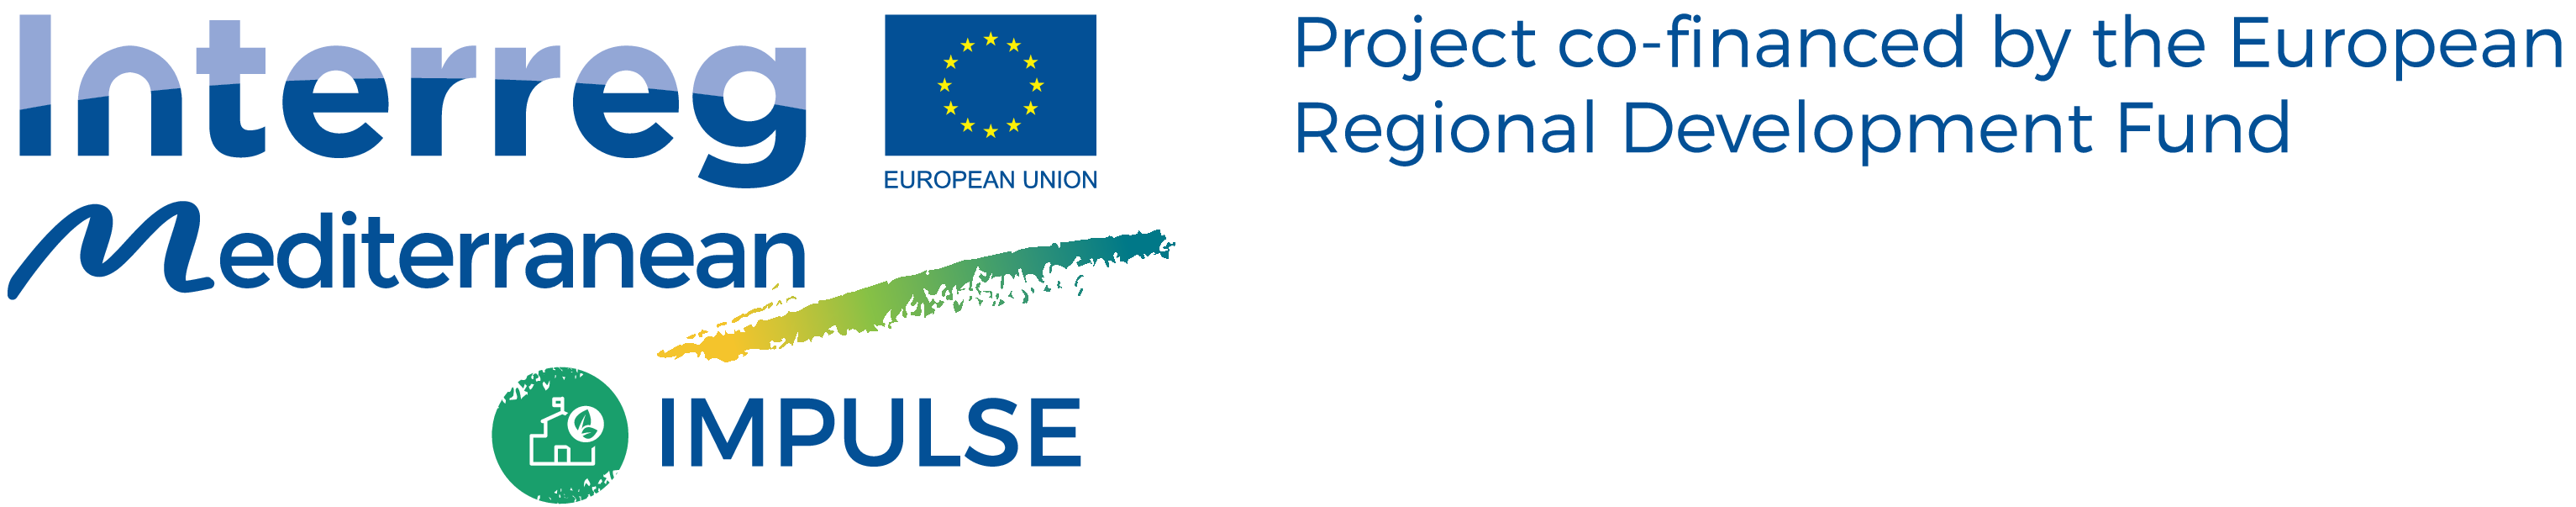 LOGO ERDF IMPULSE